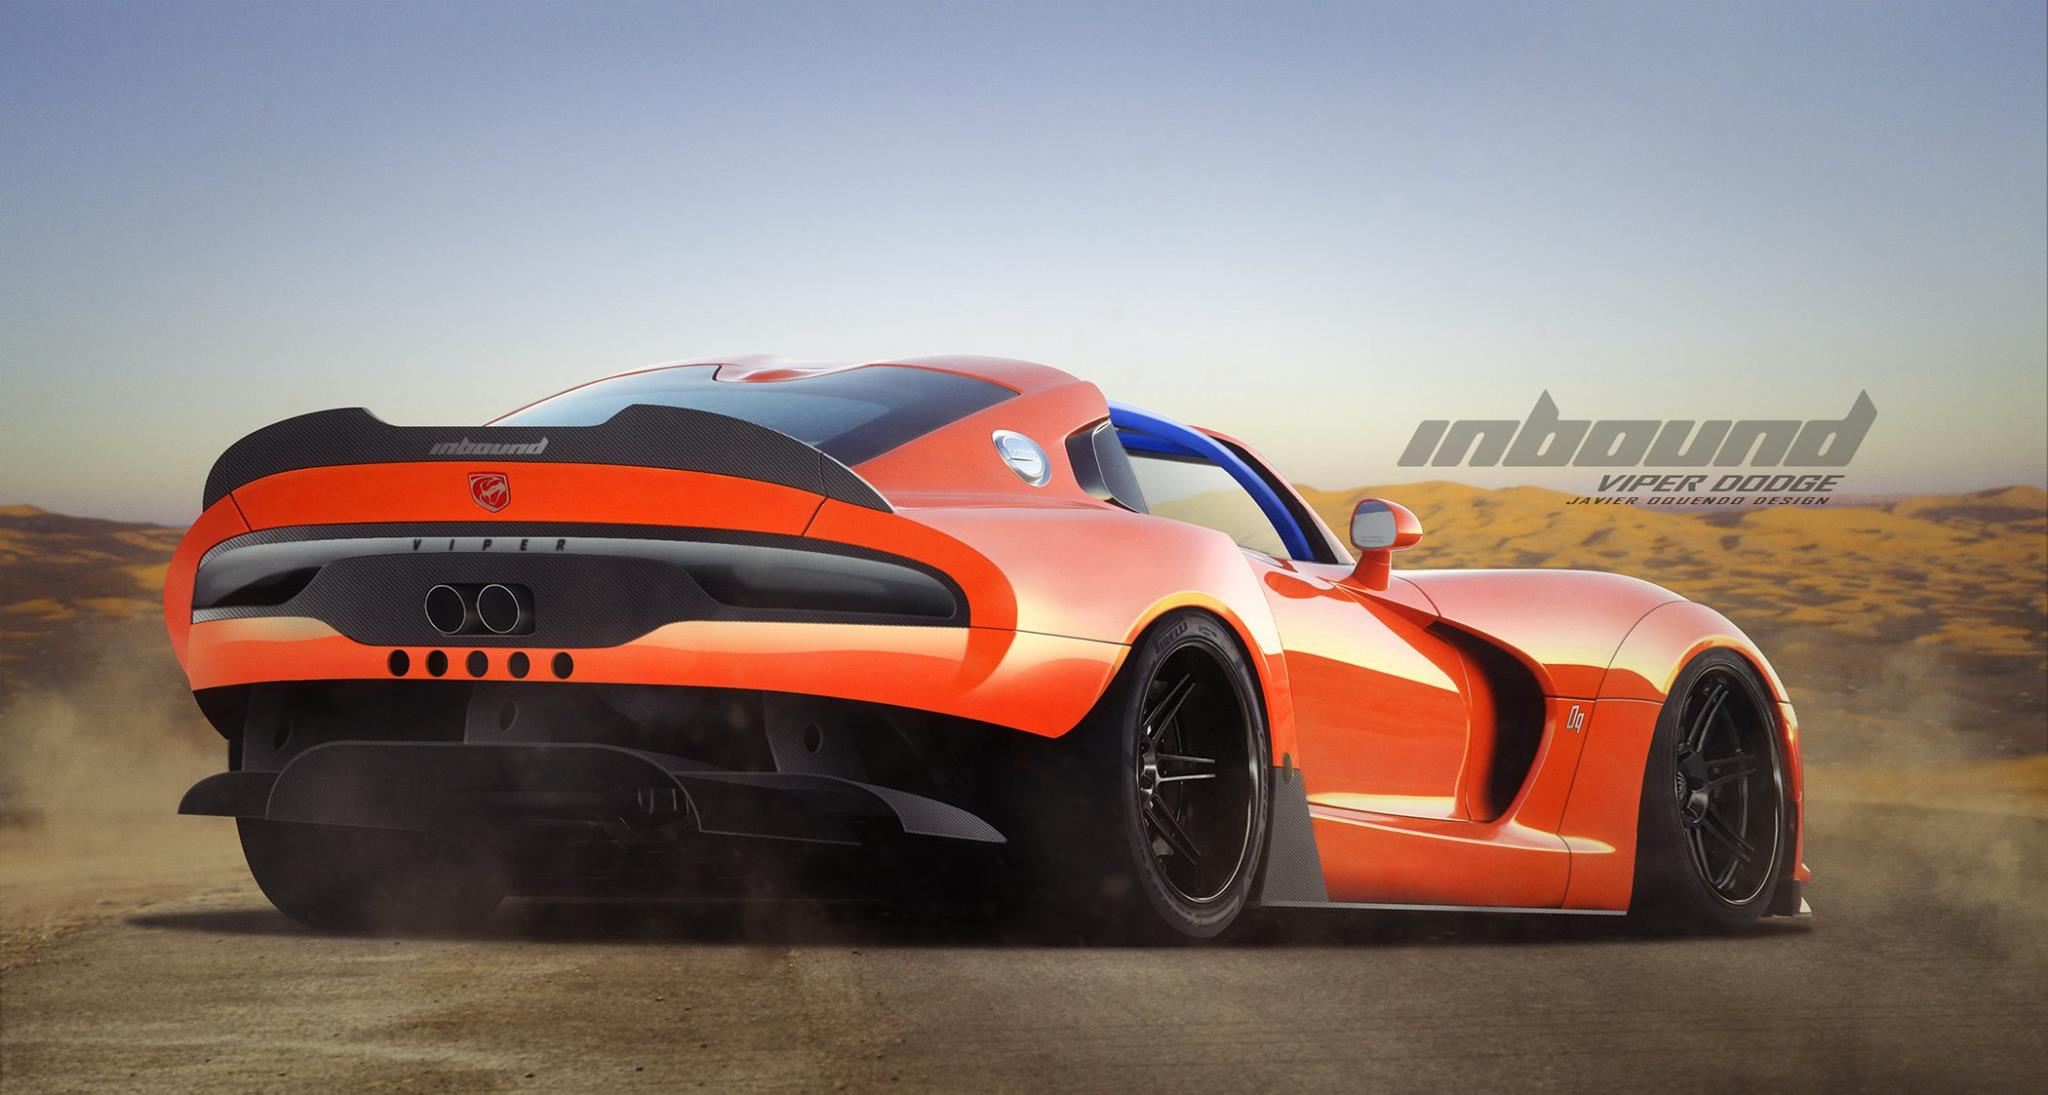 Targa Top Dodge Viper Racer Would Be An Awesome Swansong